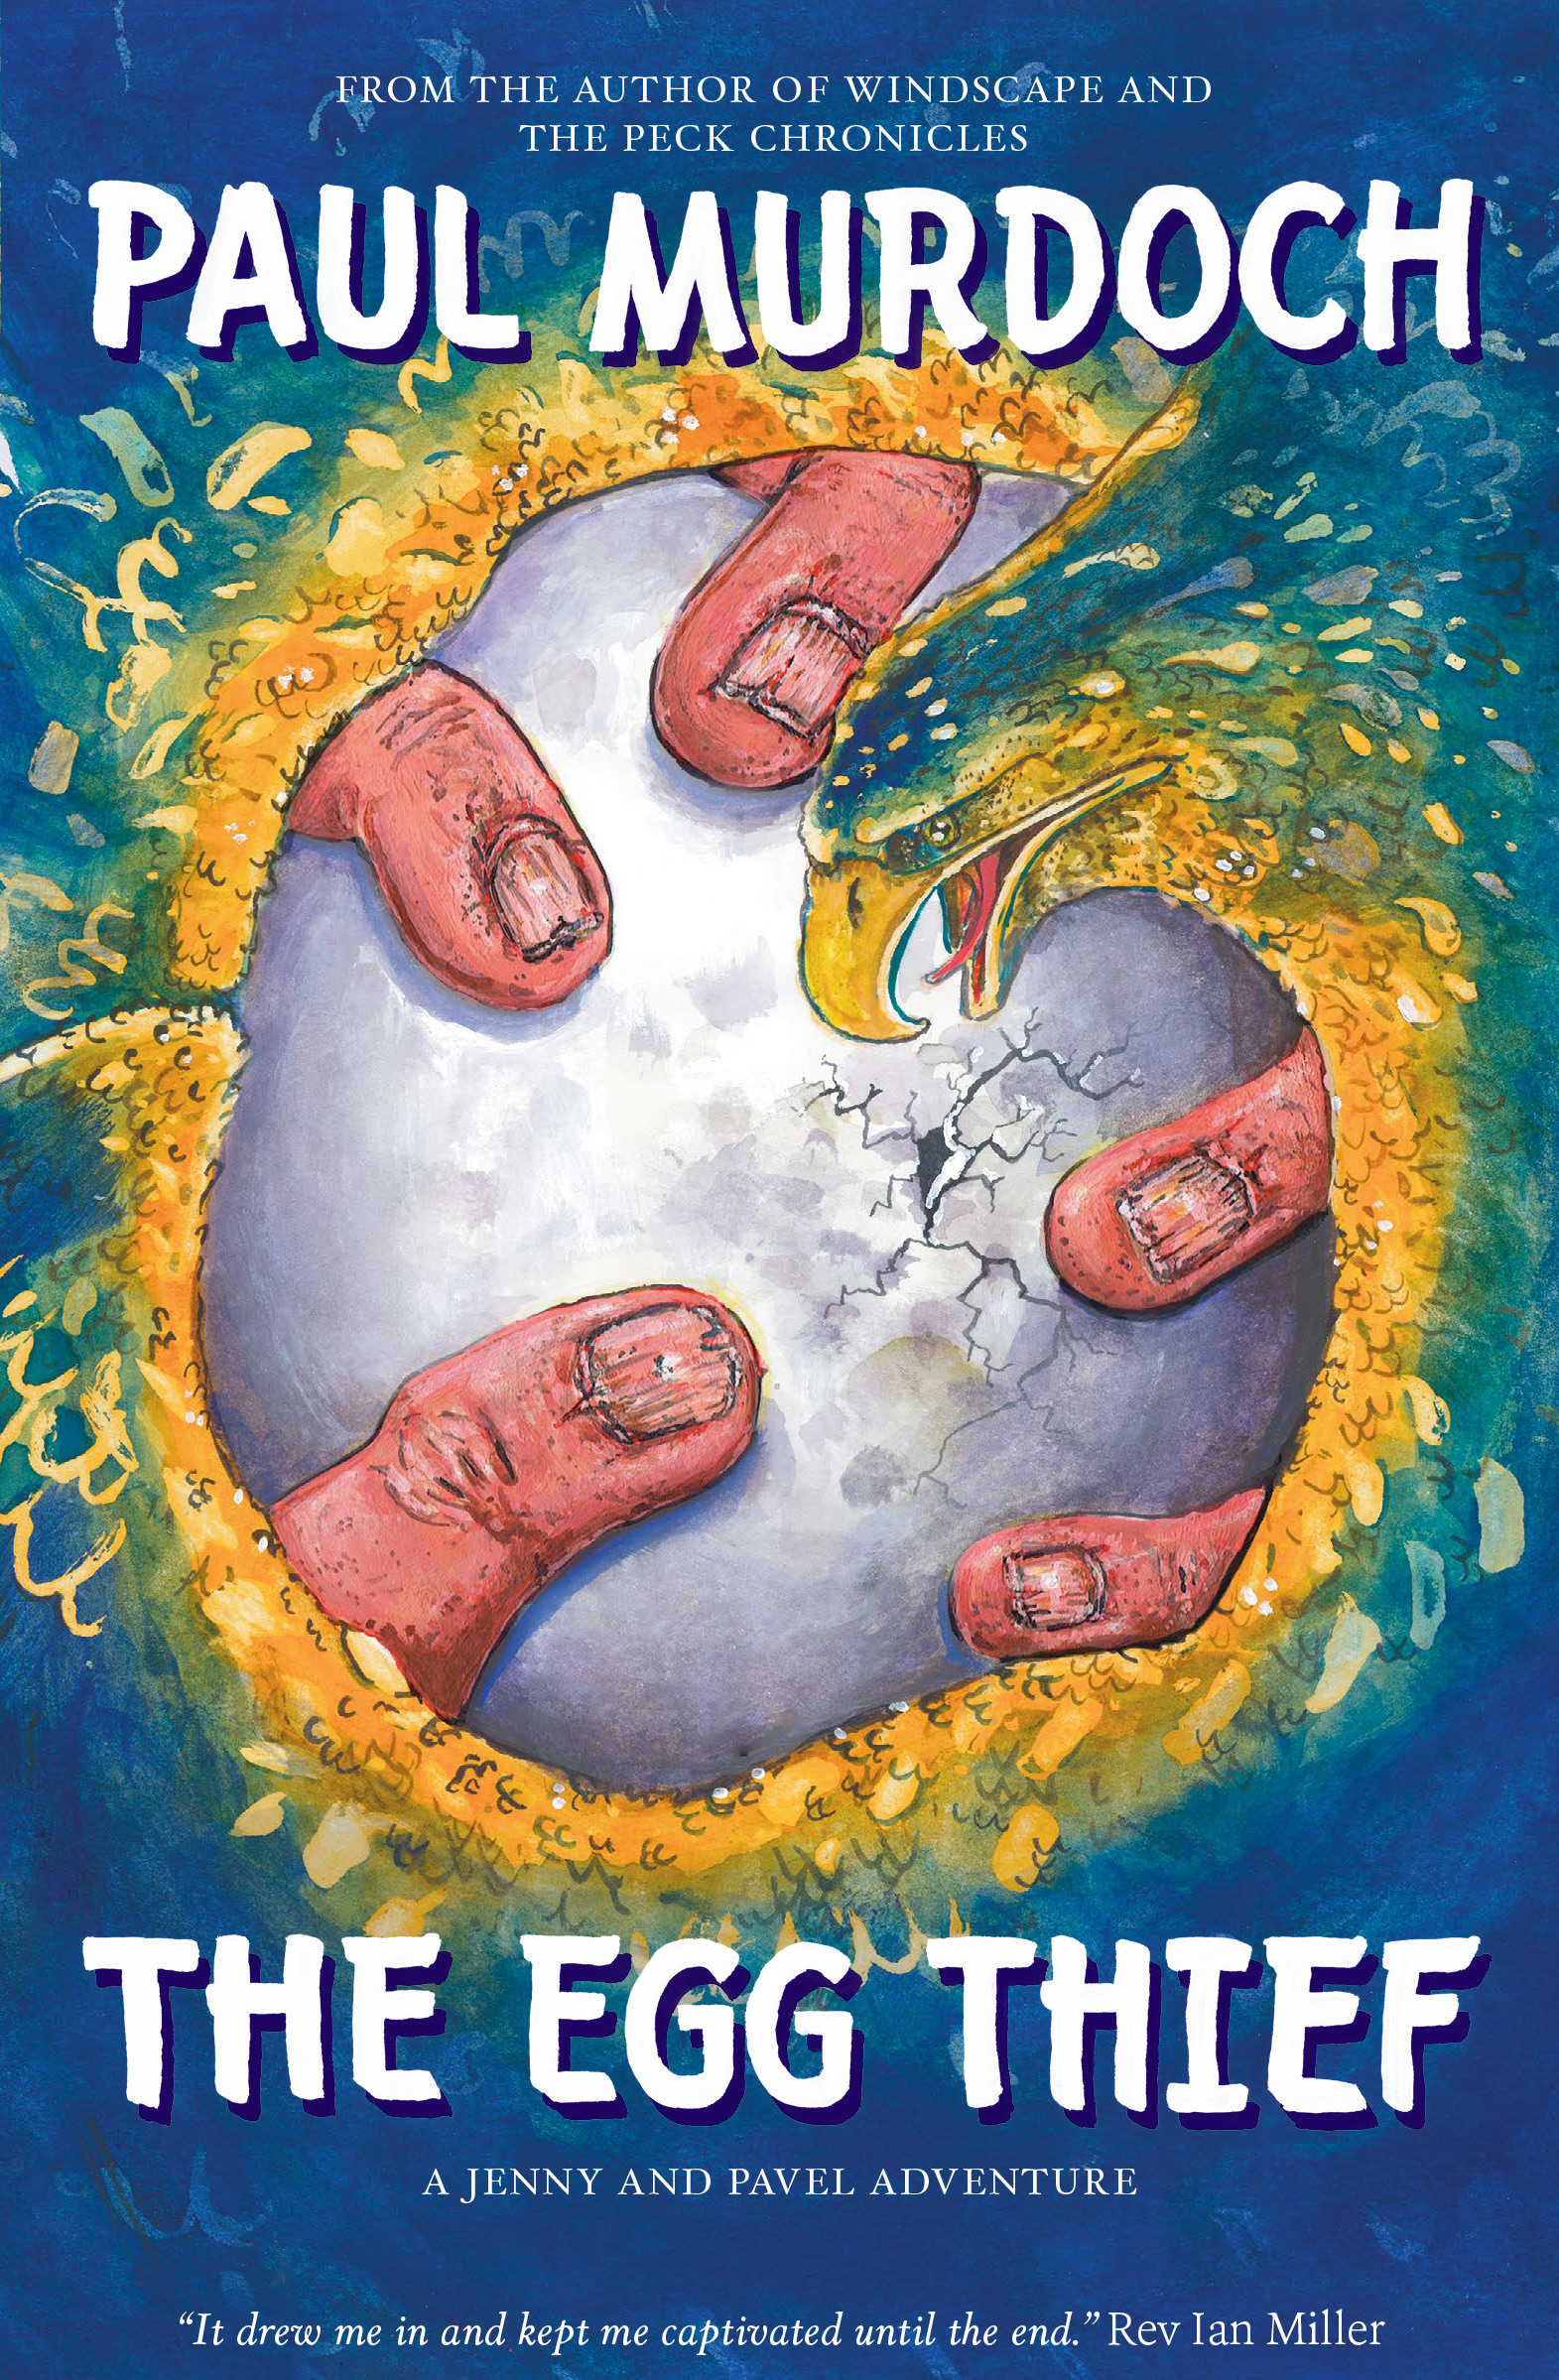 Paul Murdoch's book cover for Egg Thief published by Neetah Books showing a eagle and it's wings forming an egg shaped circle in the middle of the book. The egg painted in the centre of the book has fingers surrounding it. The hands are dirty and big. The egg is cracked. The book is blue, green and yellow | Artwork & design by Ida Henrich